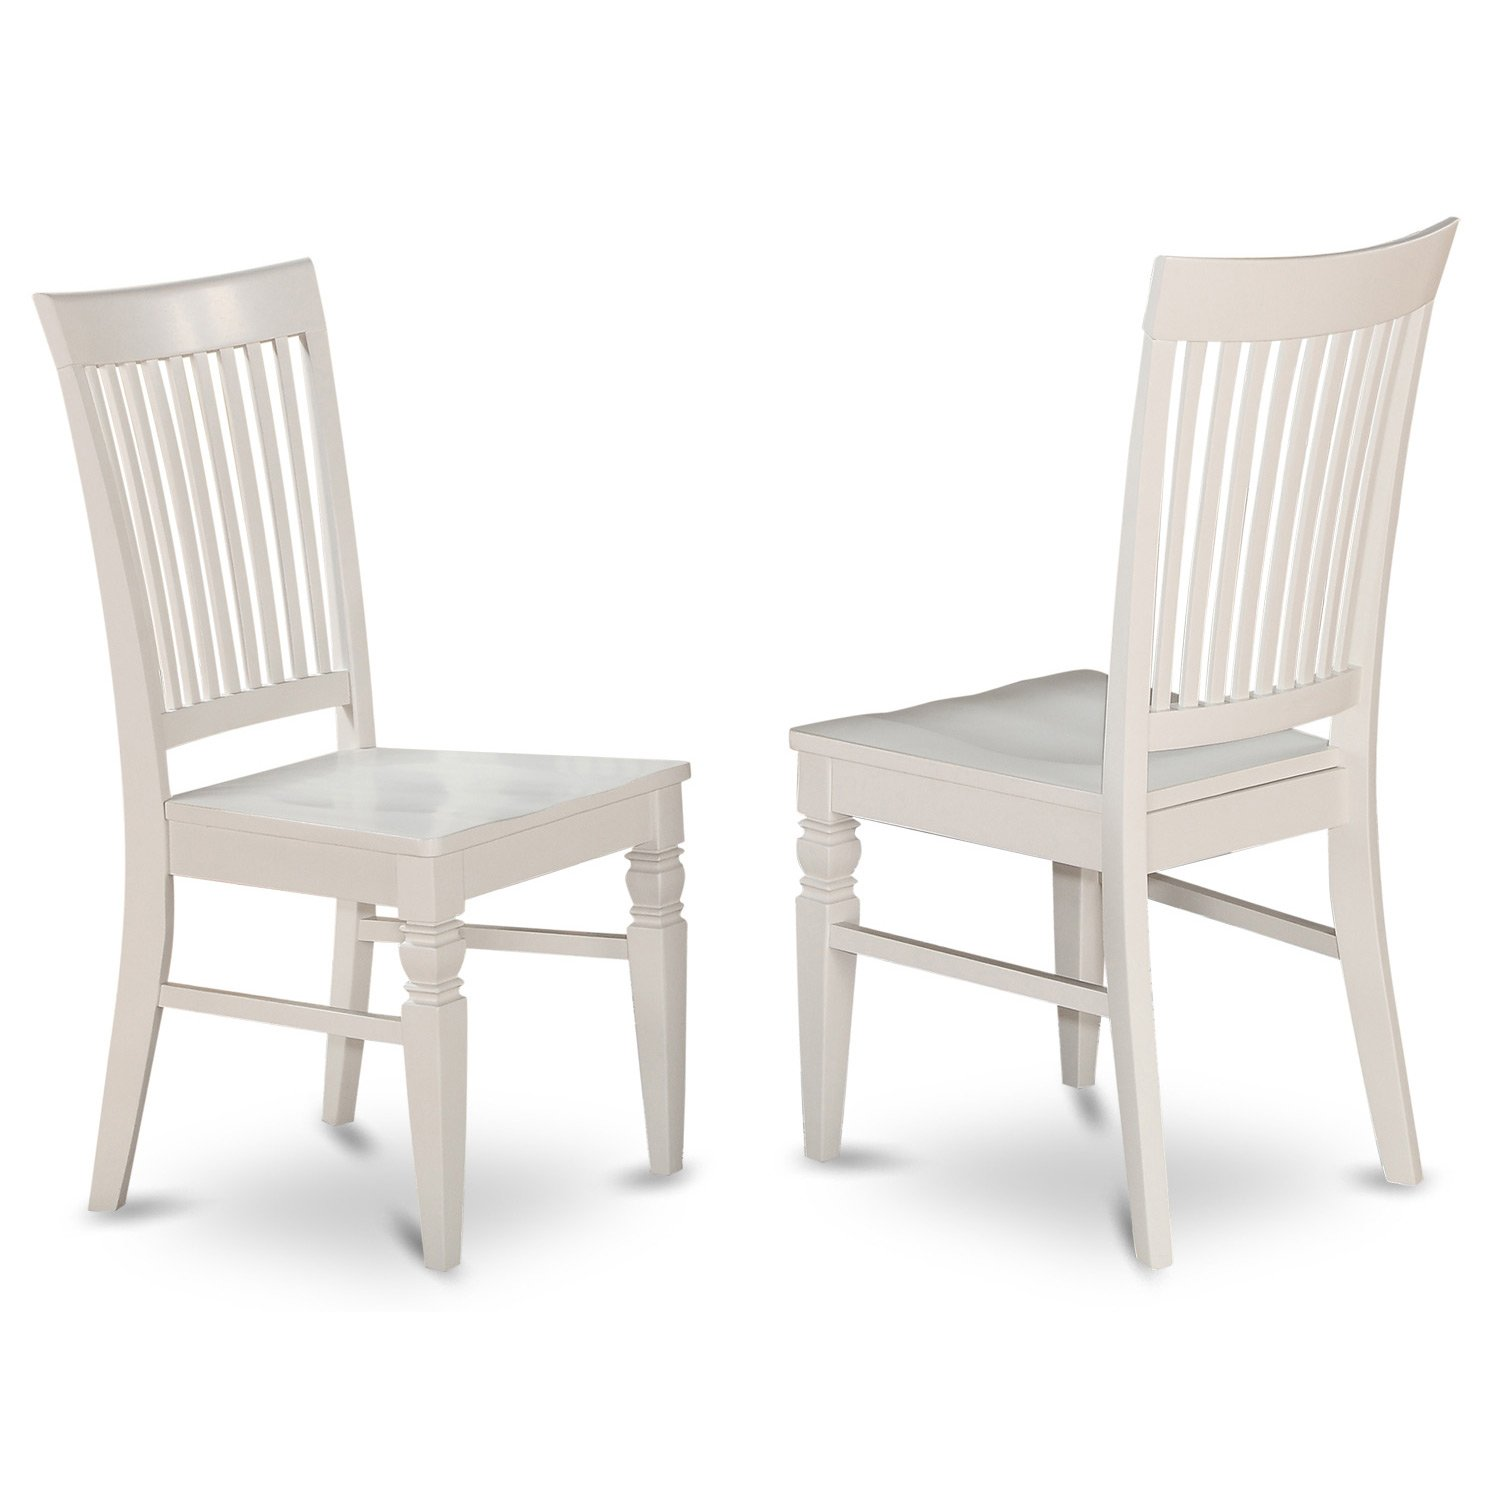 East West Furniture ANWE5-LWH-W 5 PC Set with One Table 4 Solid Wood Seat Dinette Chairs in a Distinctive Linen White